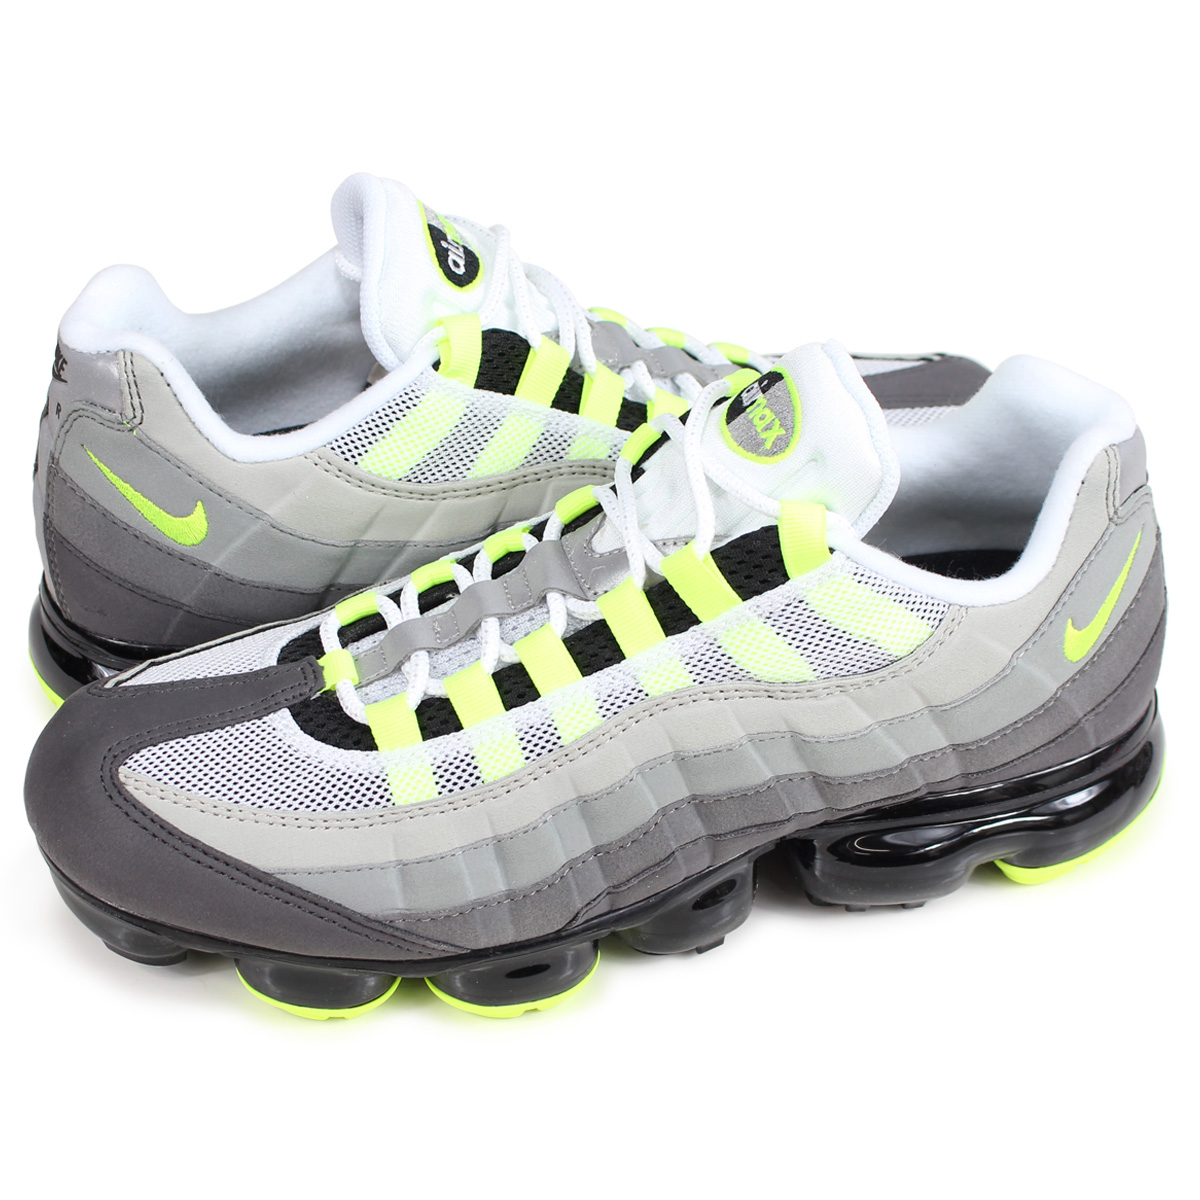 NIKE AIR VAPORMAX 95 NEON Nike air vapor max 95 sneakers men AJ7292-001  neon yellow  load planned Shinnyu load in reservation product 8 20  containing  a690a17e1